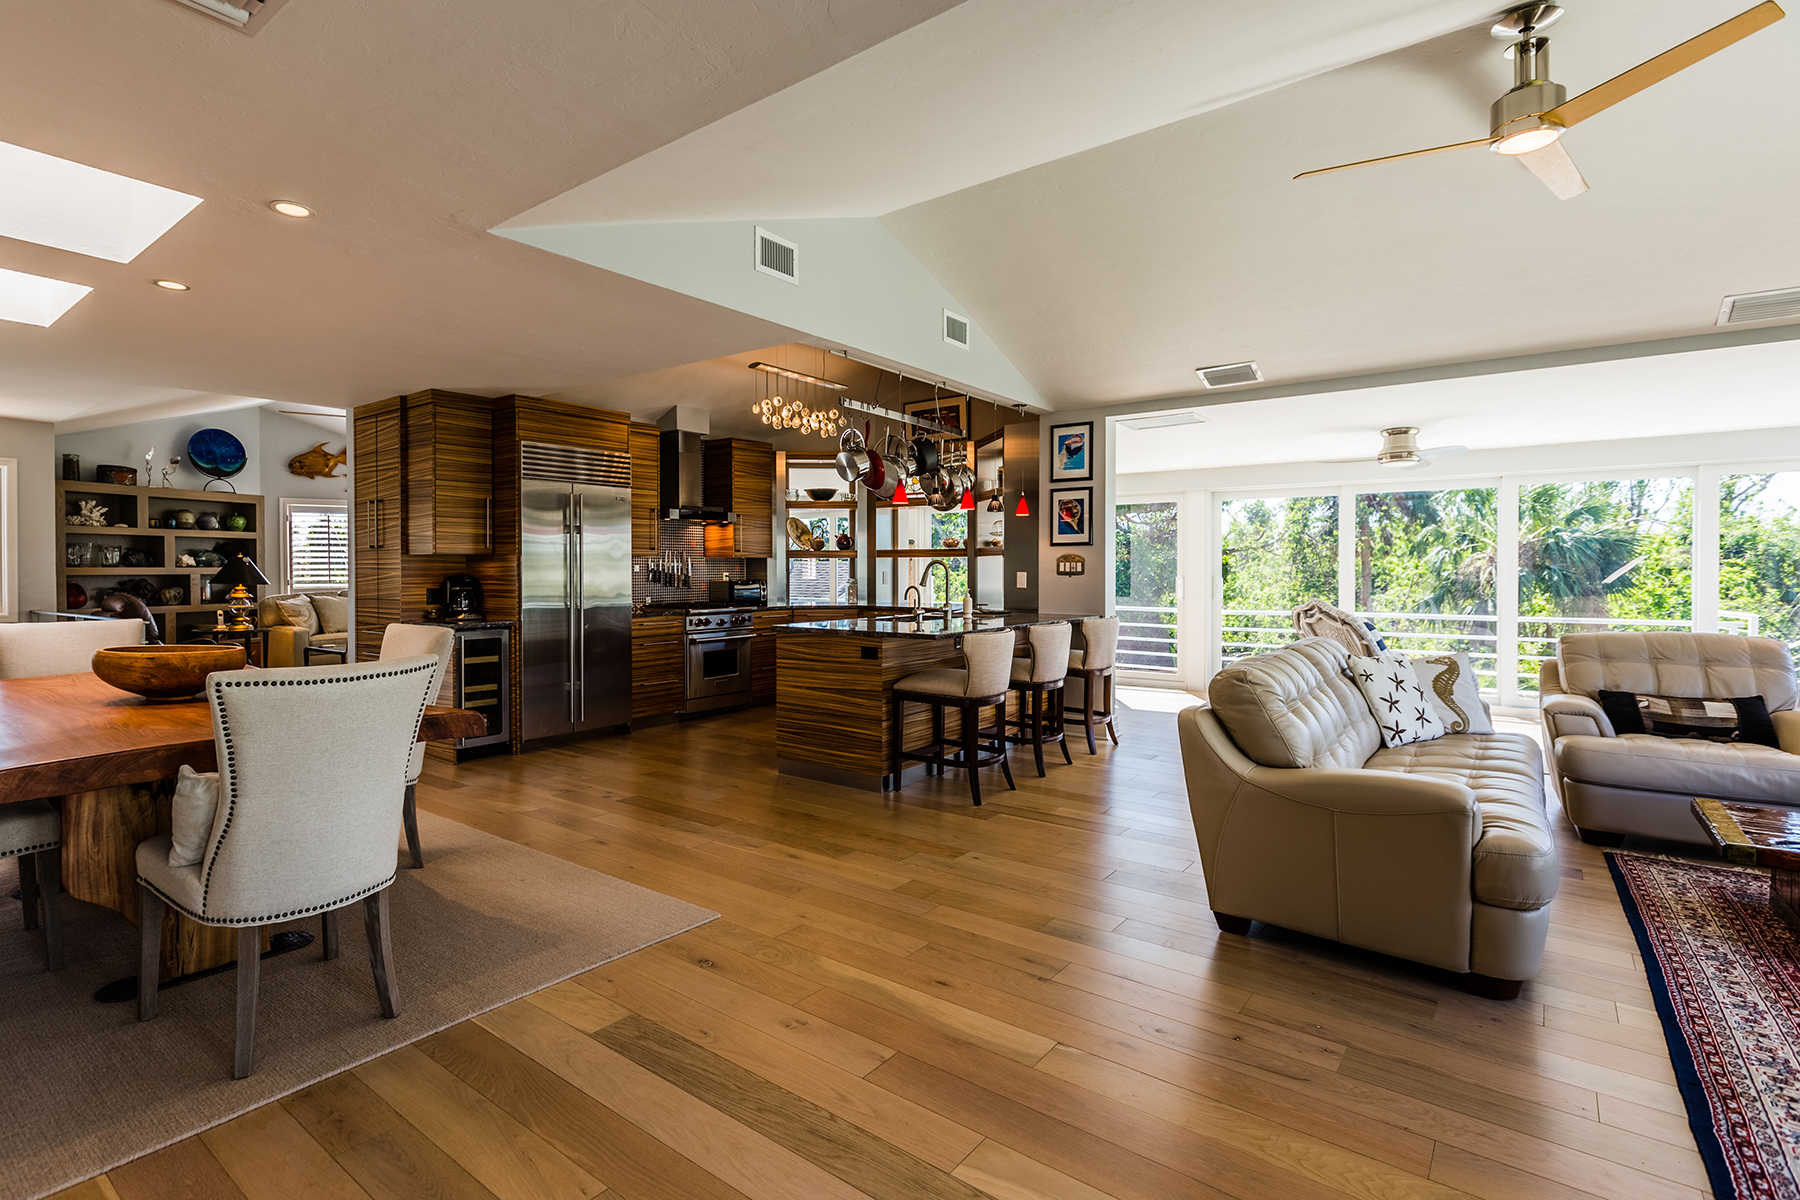 Single Family Home for Sale at HIDEAWAY BEACH 361 Wild Coffee Ln, Marco Island, Florida 34145 United States